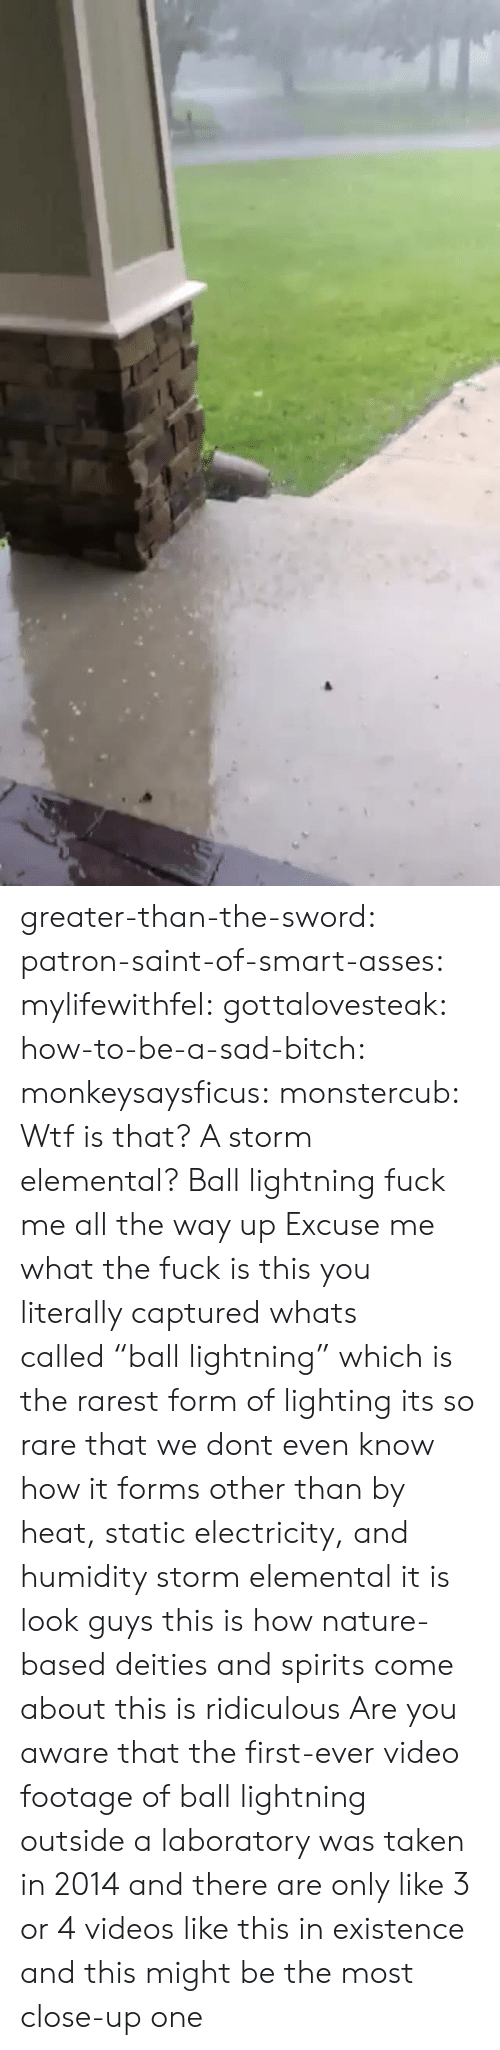 """This Is Ridiculous: greater-than-the-sword:  patron-saint-of-smart-asses:  mylifewithfel:  gottalovesteak:  how-to-be-a-sad-bitch:  monkeysaysficus:   monstercub: Wtf is that? A storm elemental?  Ball lightning fuck me all the way up   Excuse me what the fuck is this  you literally captured whats called""""ball lightning"""" which is the rarest form of lighting its so rare that we dont even know how it forms other than by heat, static electricity, and humidity  storm elemental it is  look guys this is how nature-based deities and spirits come about this is ridiculous  Are you aware that the first-ever video footage of ball lightning outside a laboratory was taken in 2014 and there are only like 3 or 4 videos like this in existence and this might be the most close-up one"""